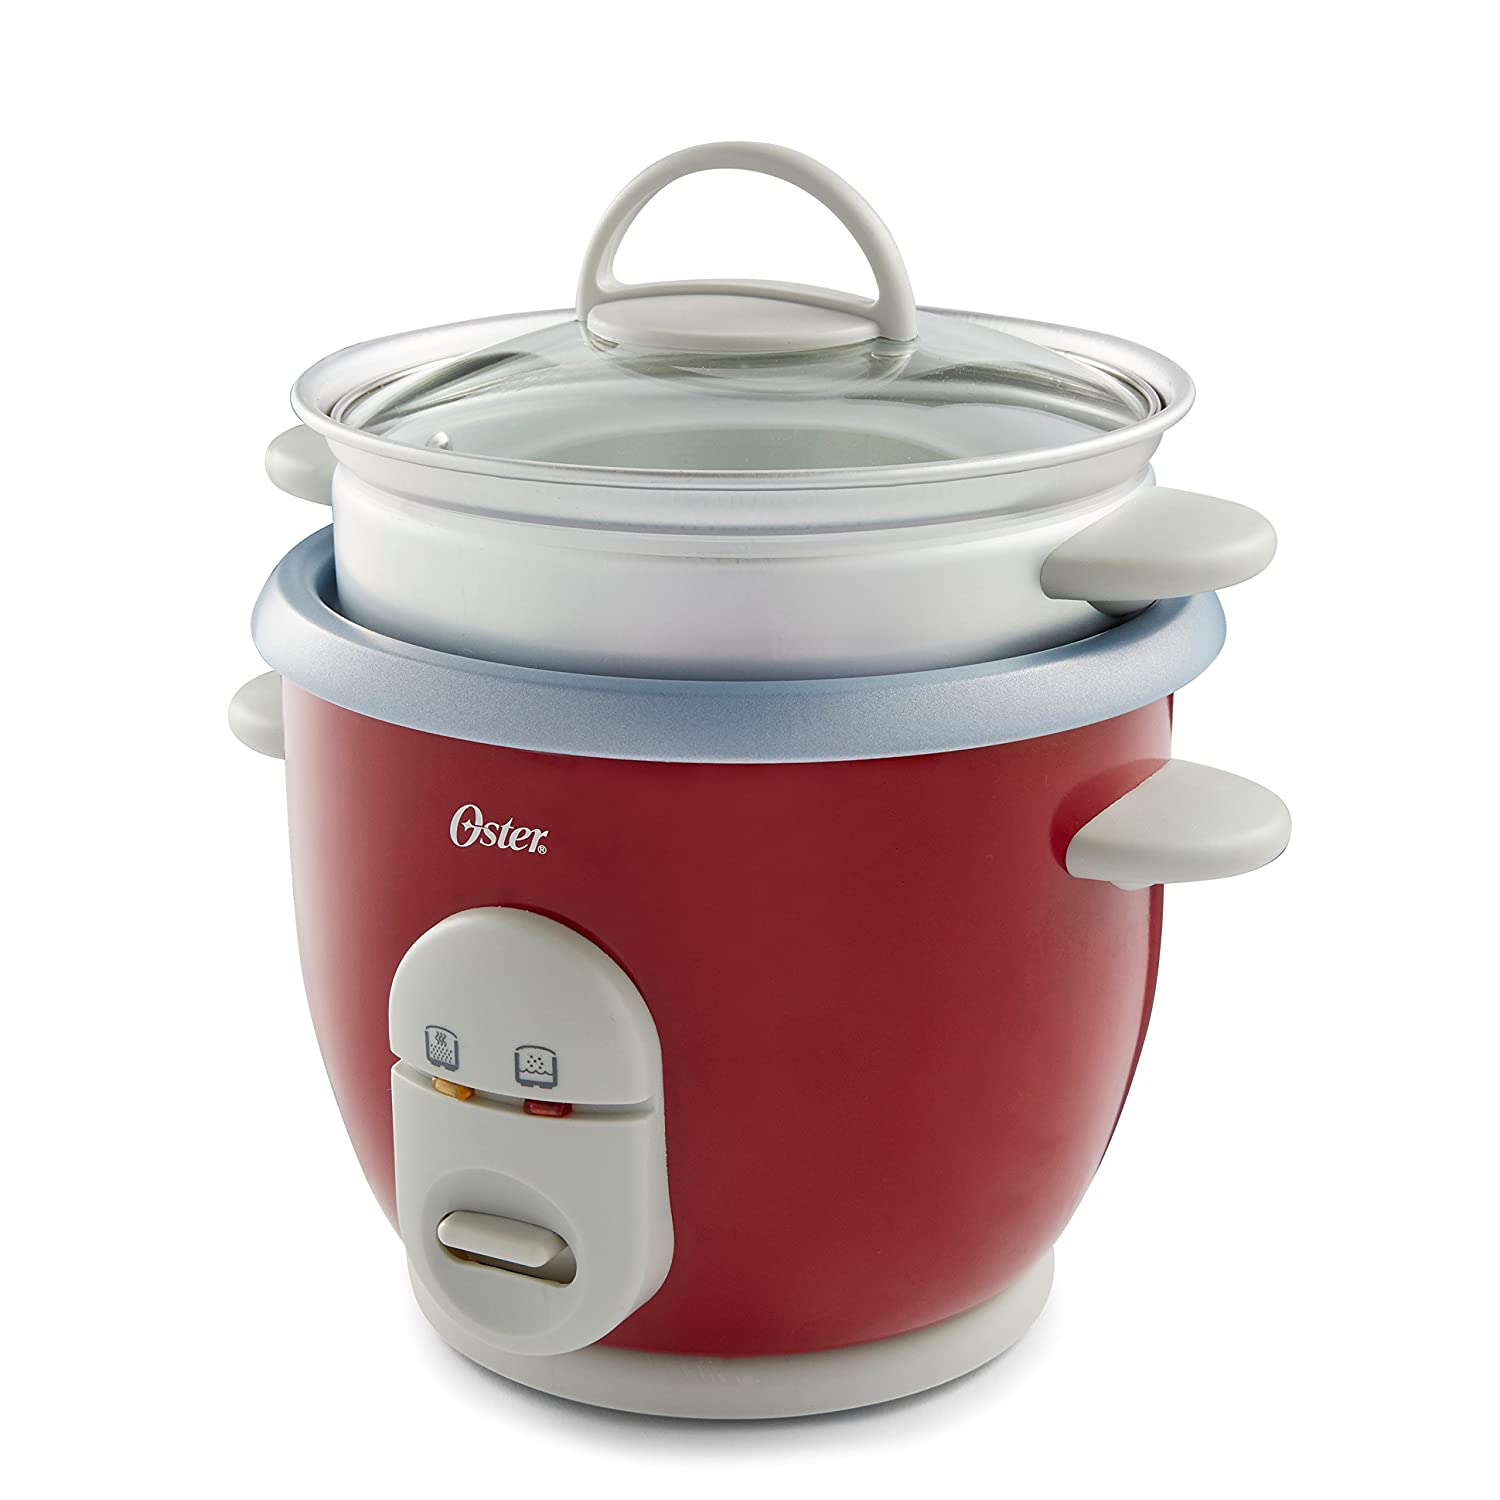 CKSTRCMS65 Oster 6-Cup Rice Cooker with Steam Tray Black